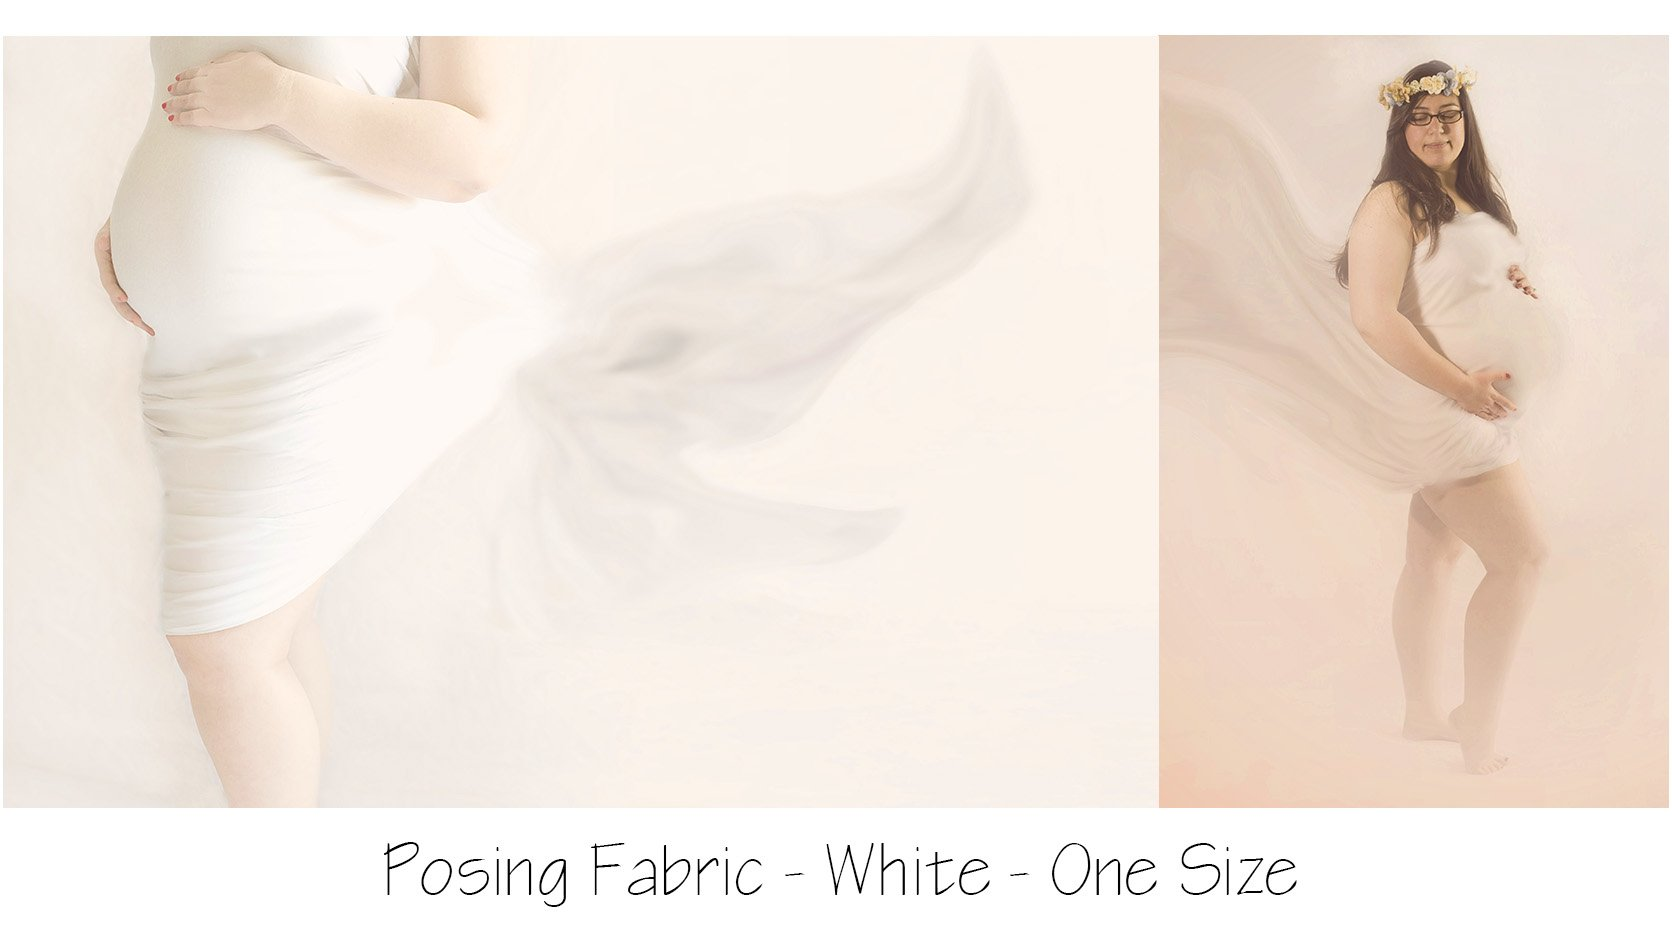 White draping fabric for maternity photos